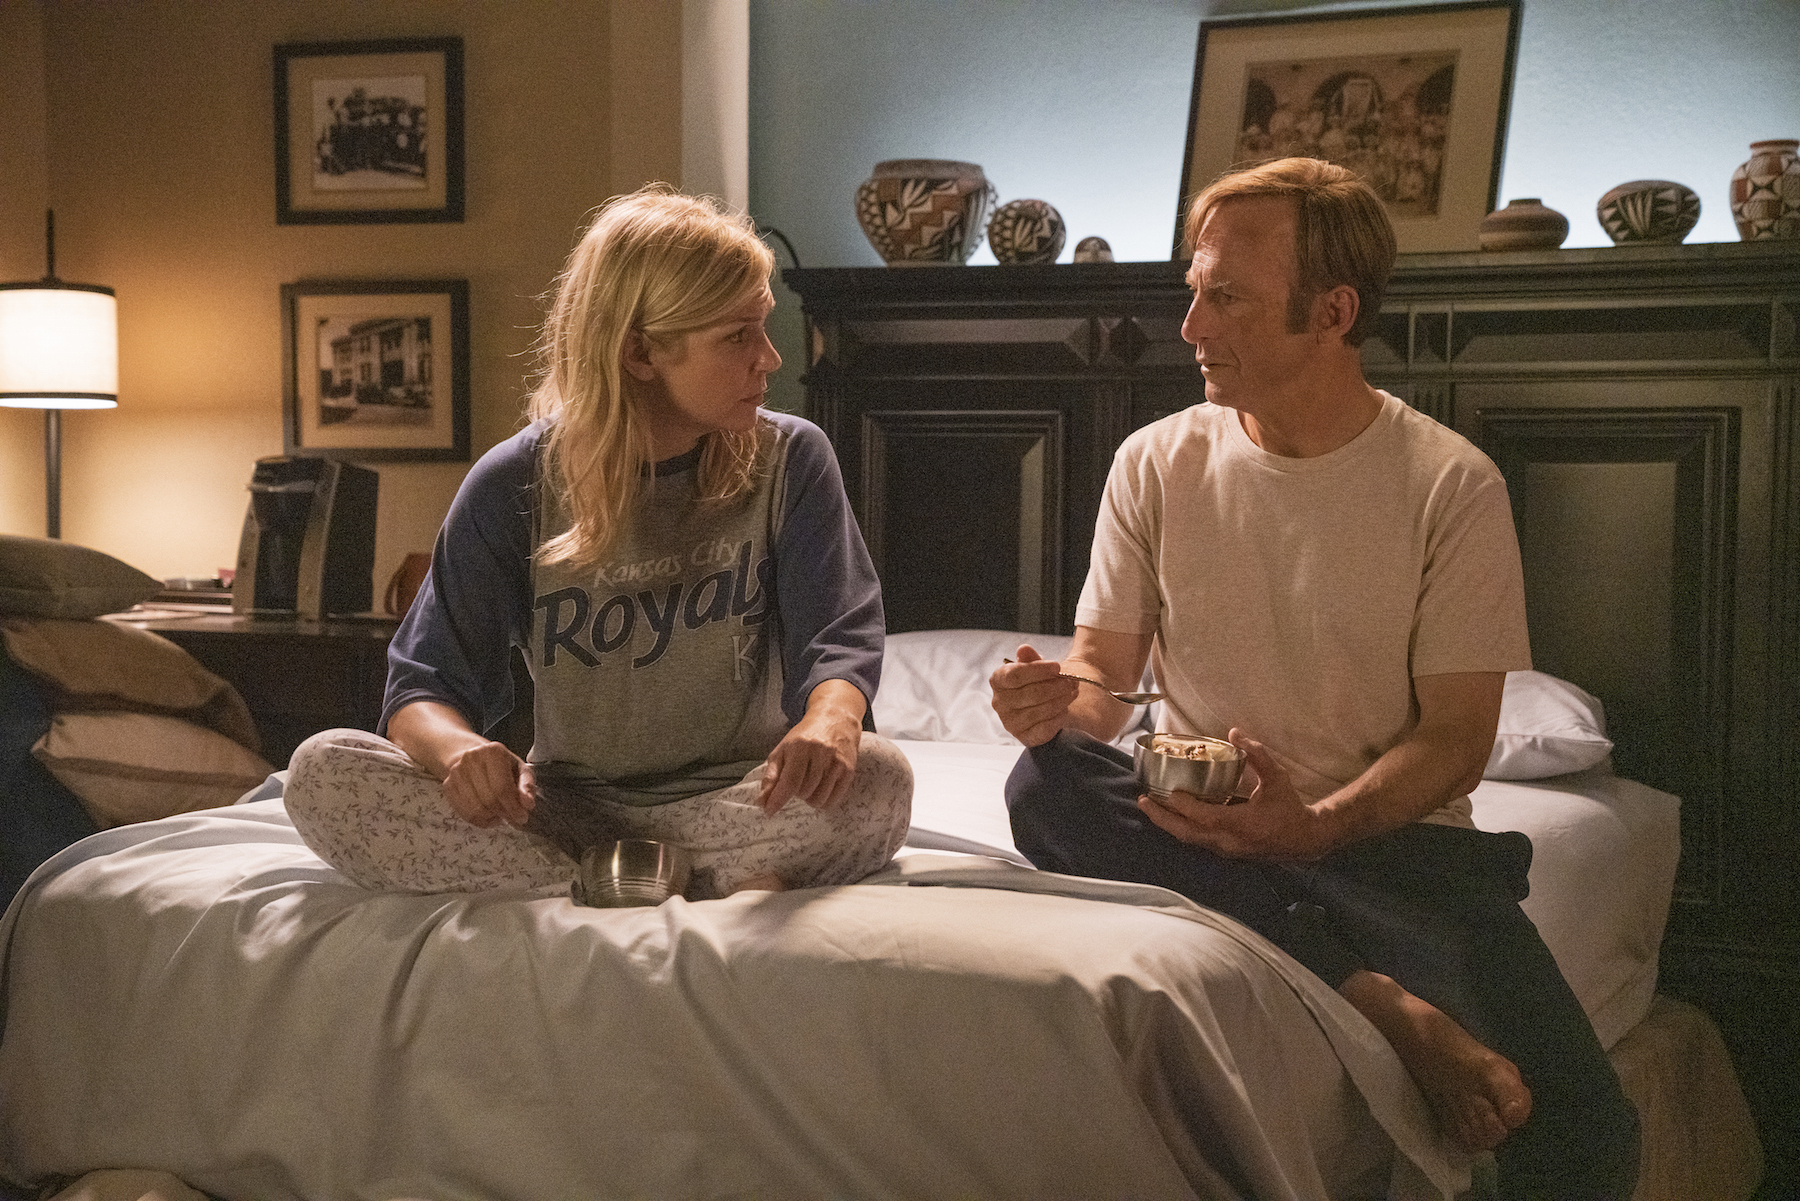 Rhea Seehorn as Kim Wexler, Bob Odenkirk as Jimmy McGill - Better Call Saul _ Season 5, Episode 10 - Photo Credit: Greg Lewis/AMC/Sony Pictures Television